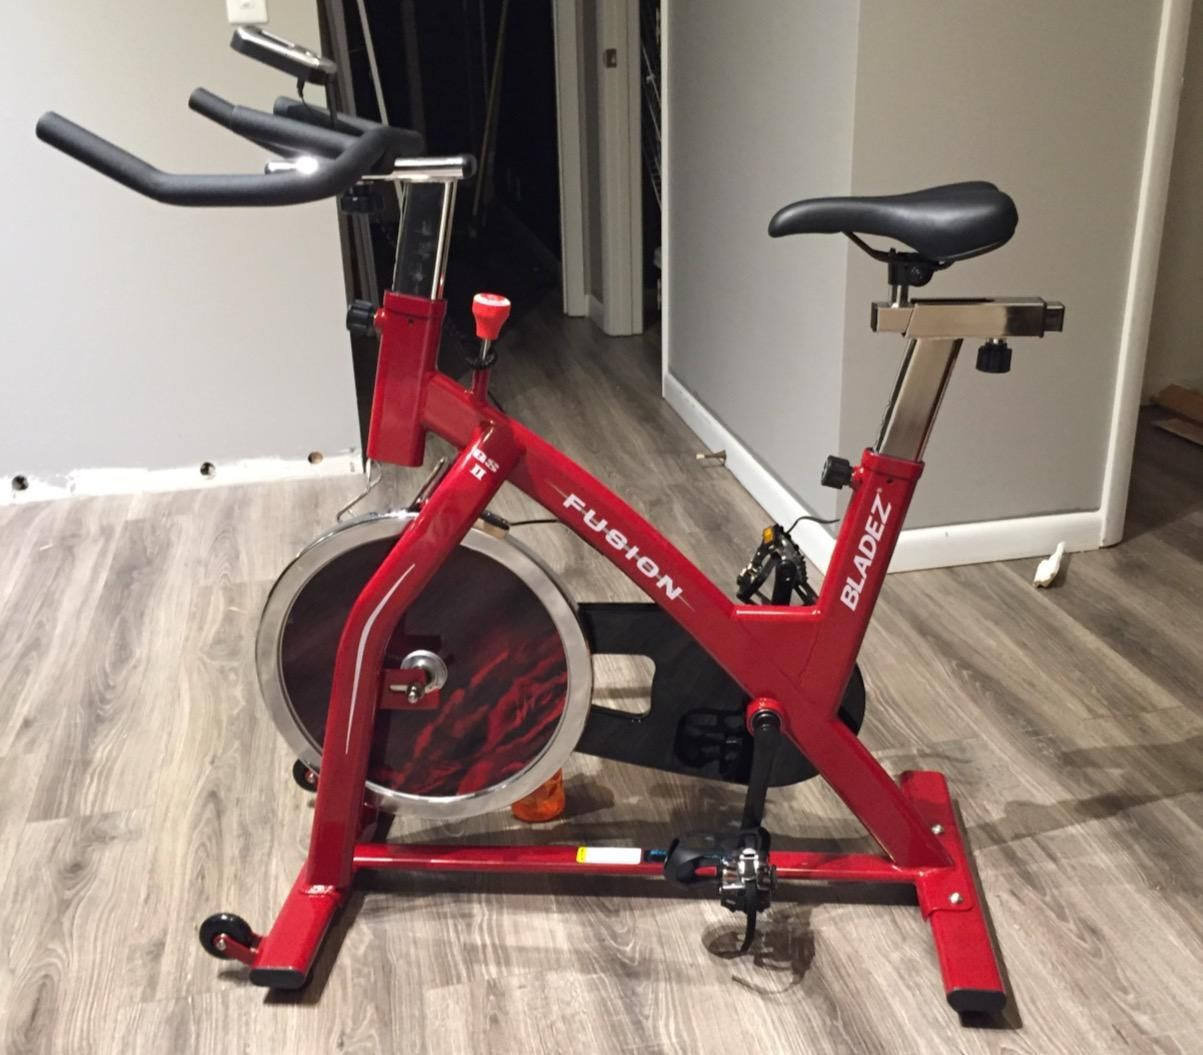 Best Spin Bike Reviews In 2020 Spin Bikes Indoor Spin Bike